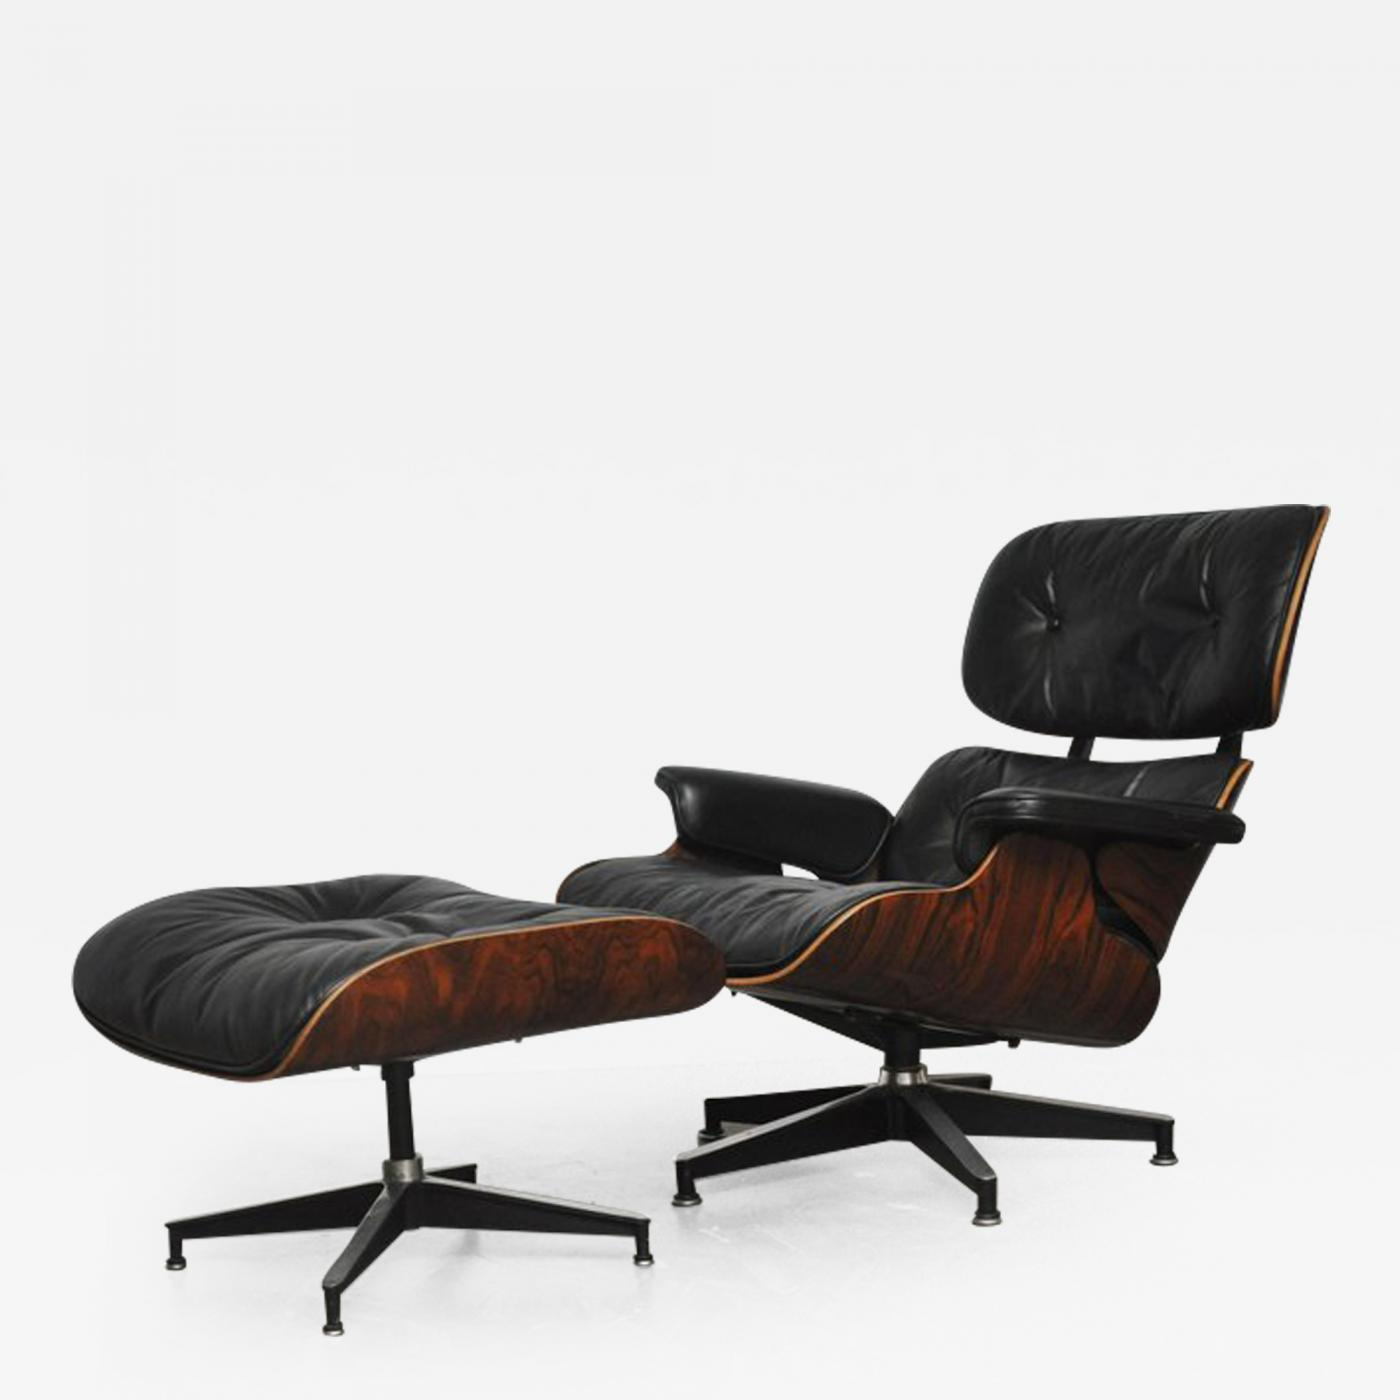 Eames Lounge Sessel Charles And Ray Eames Early Rosewood Charles Eames Lounge Chair For Herman Miller